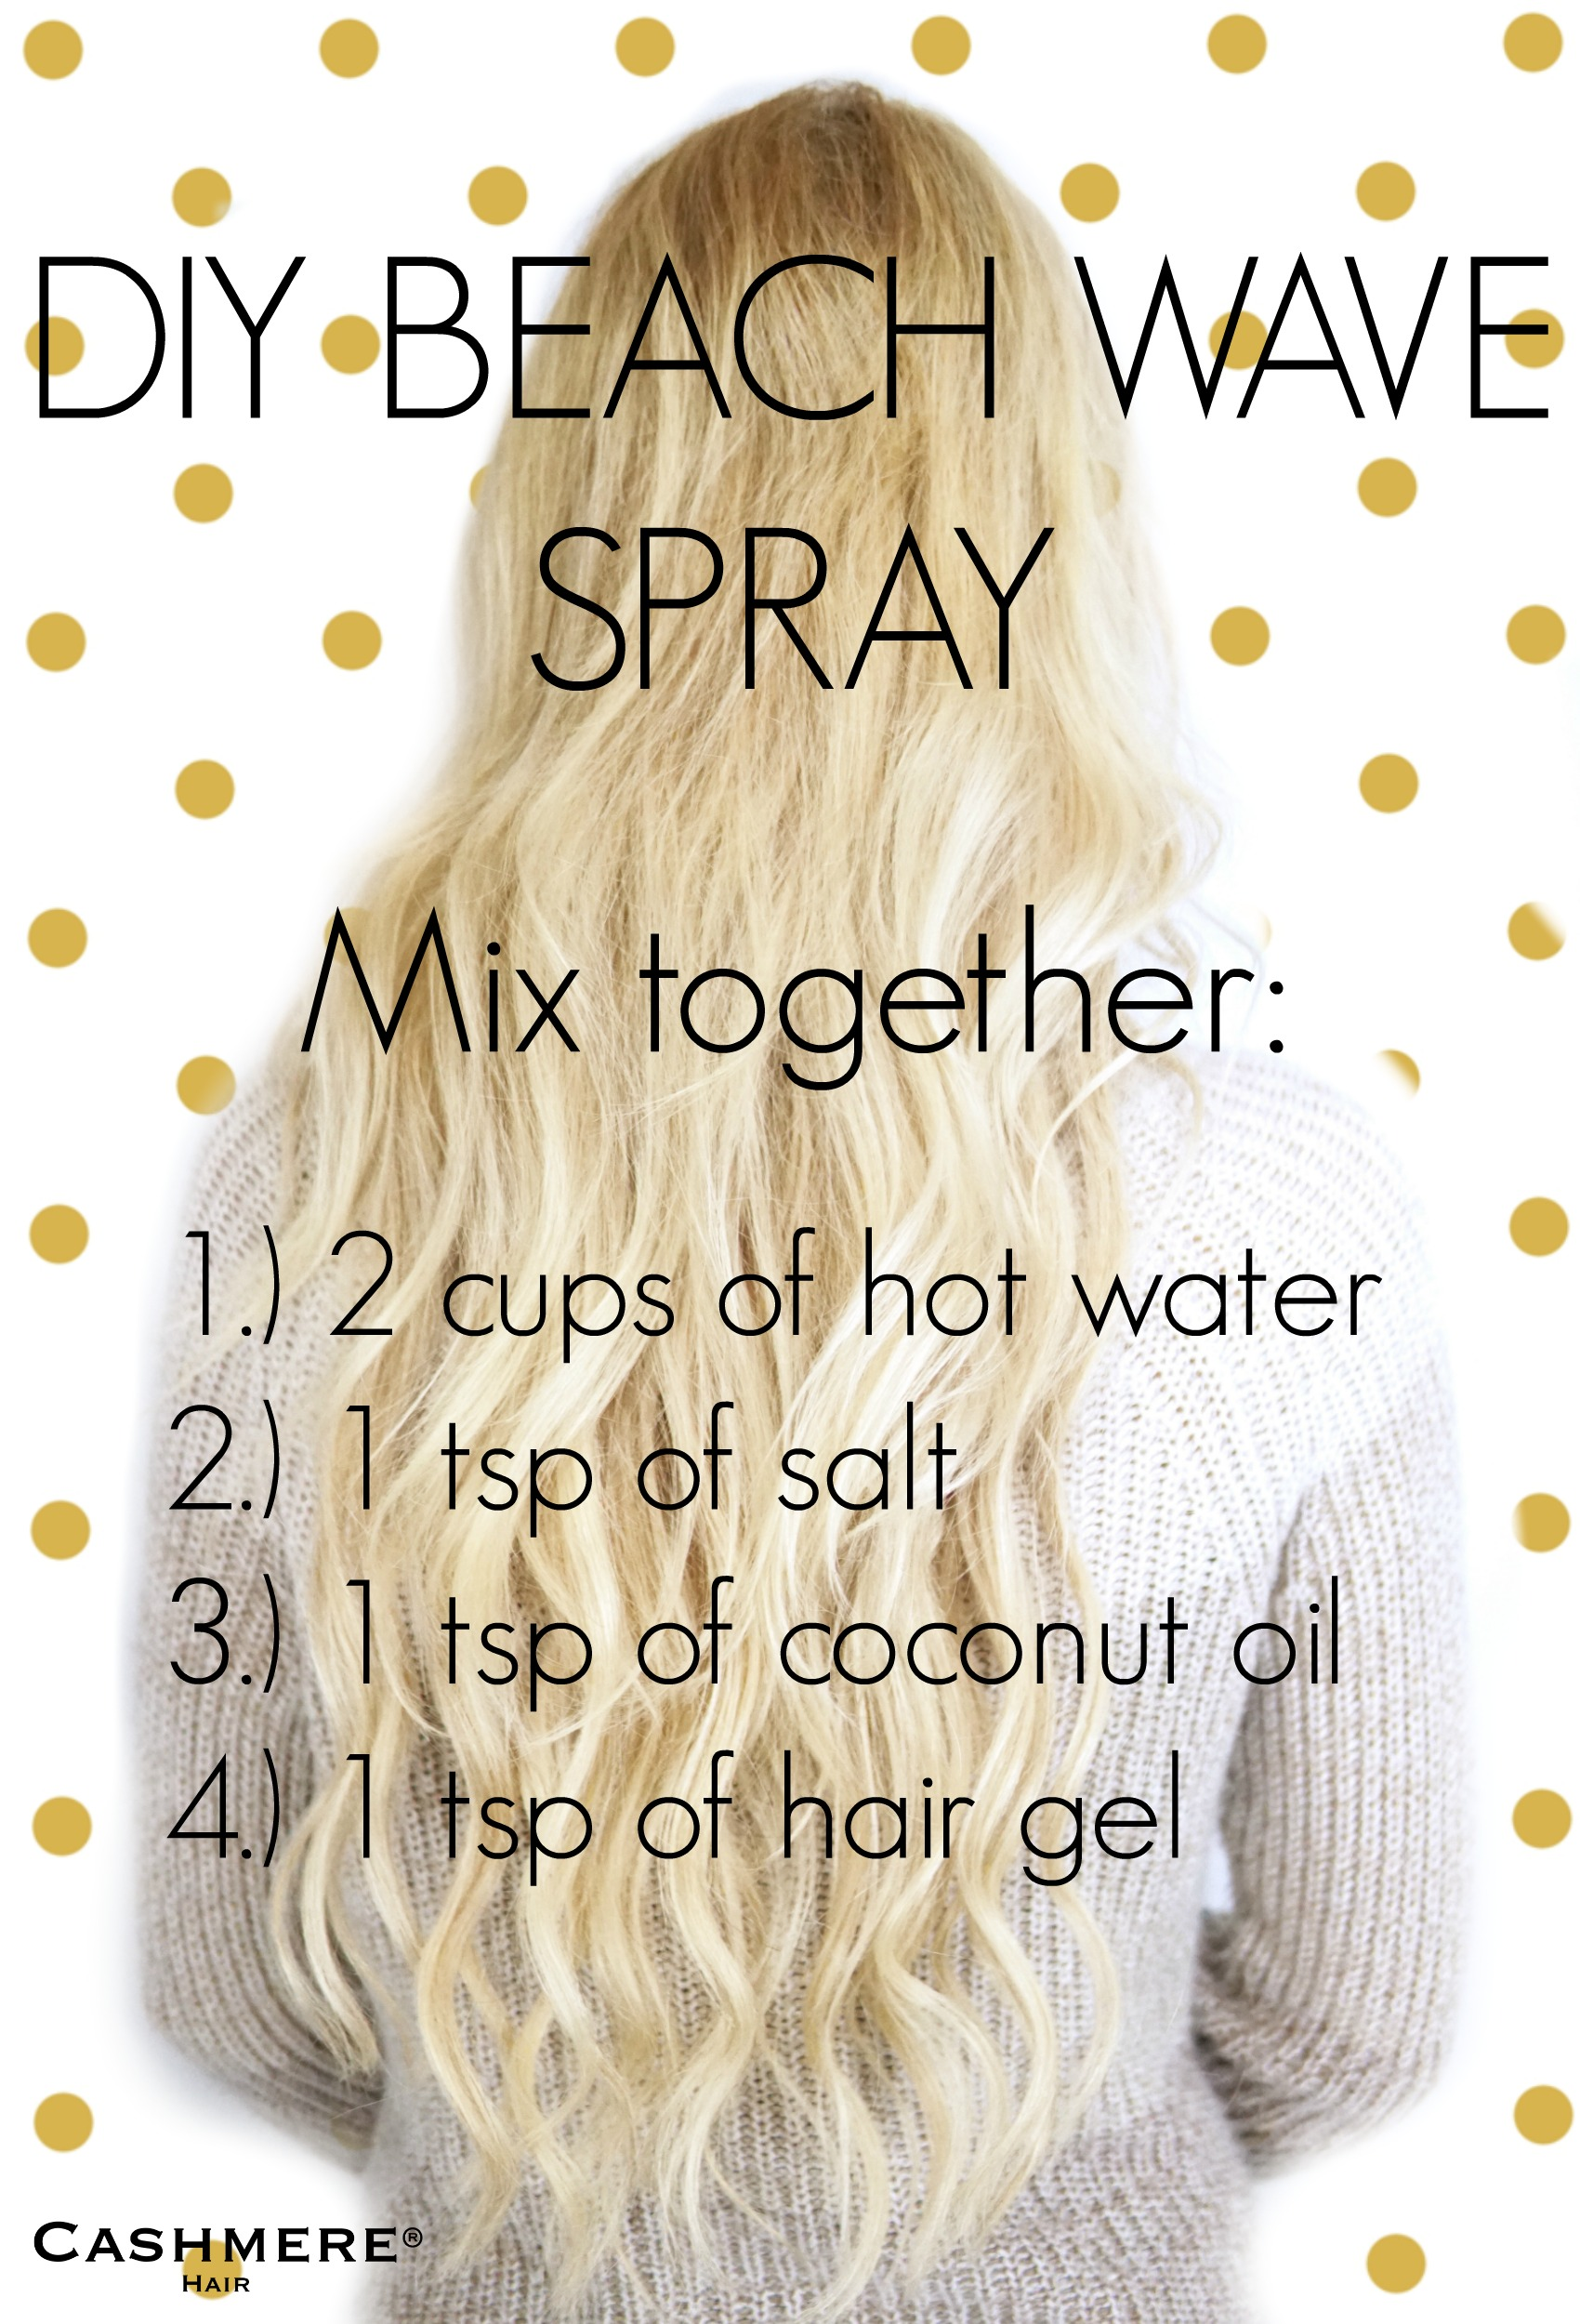 diy-beach-wave-spray